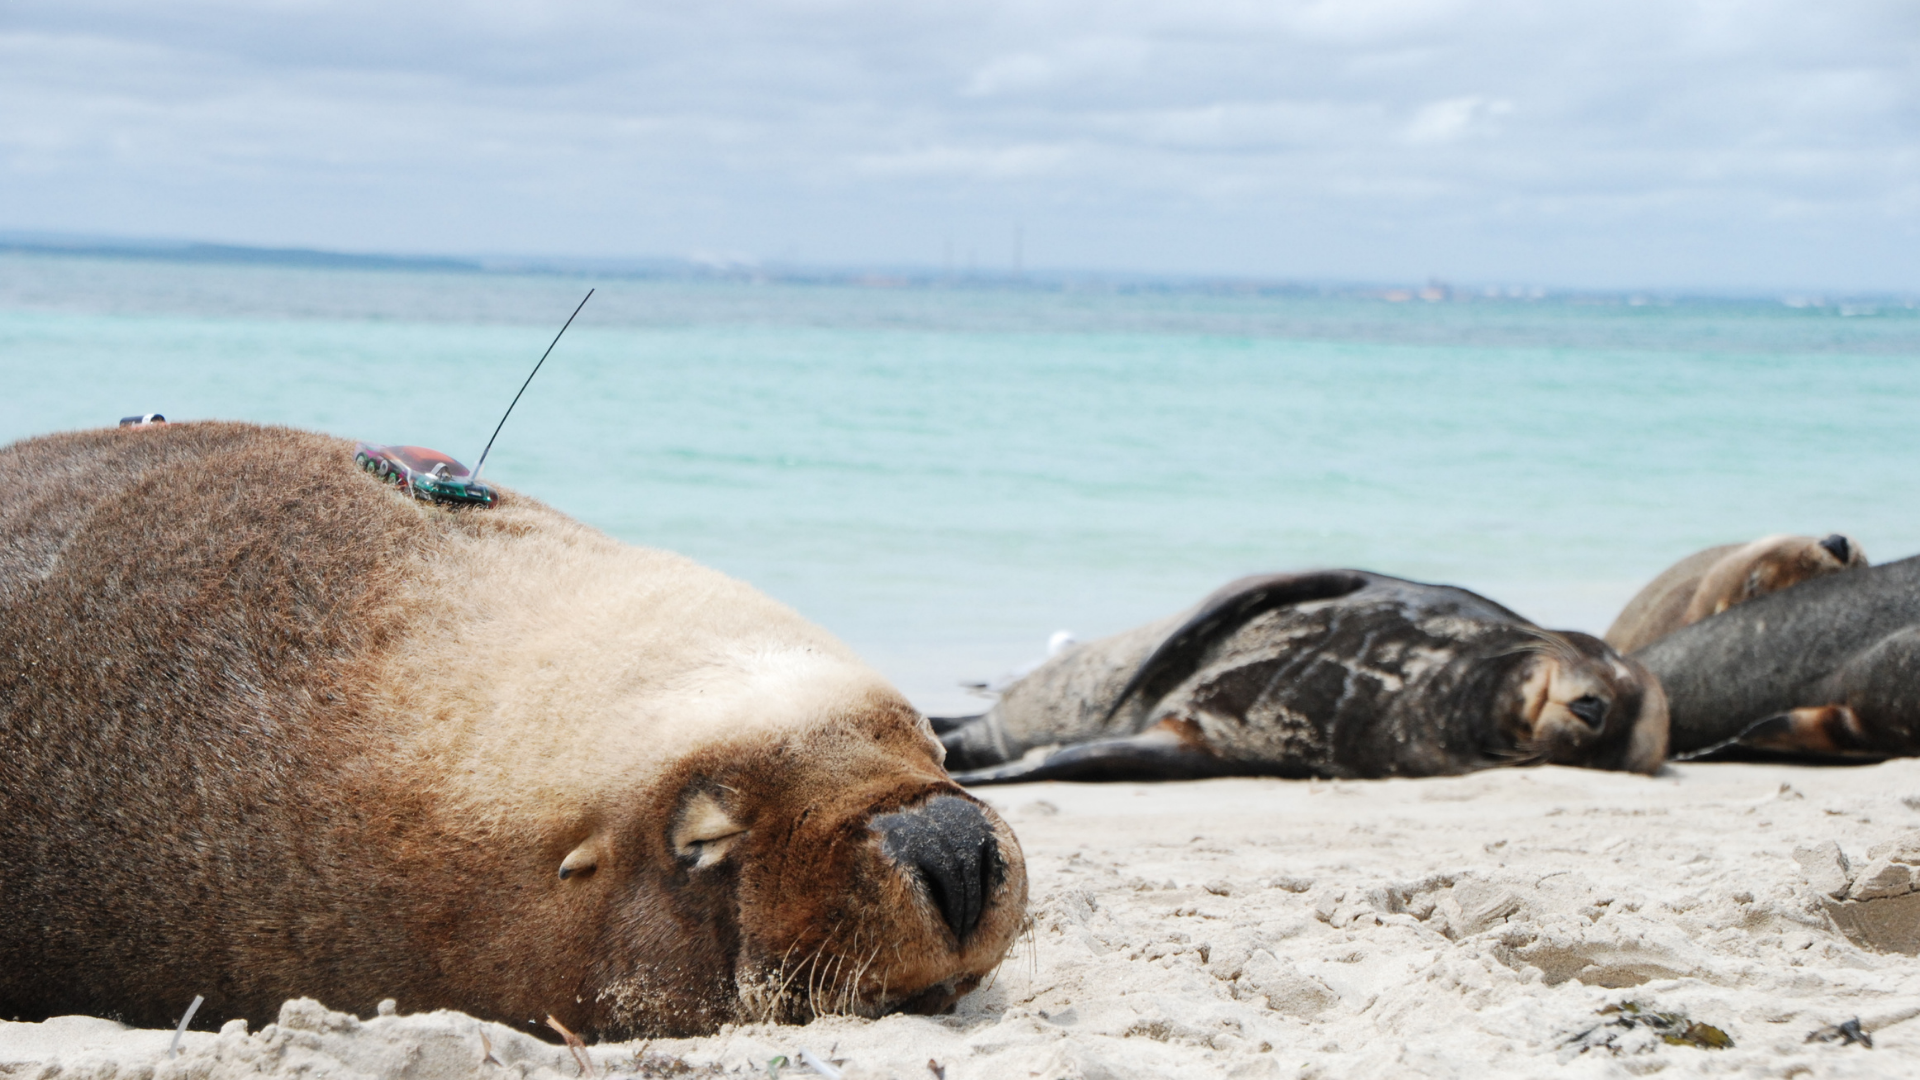 https://rfacdn.nz/zoo/assets/media/sea-lion-satellite-tagging-2.png